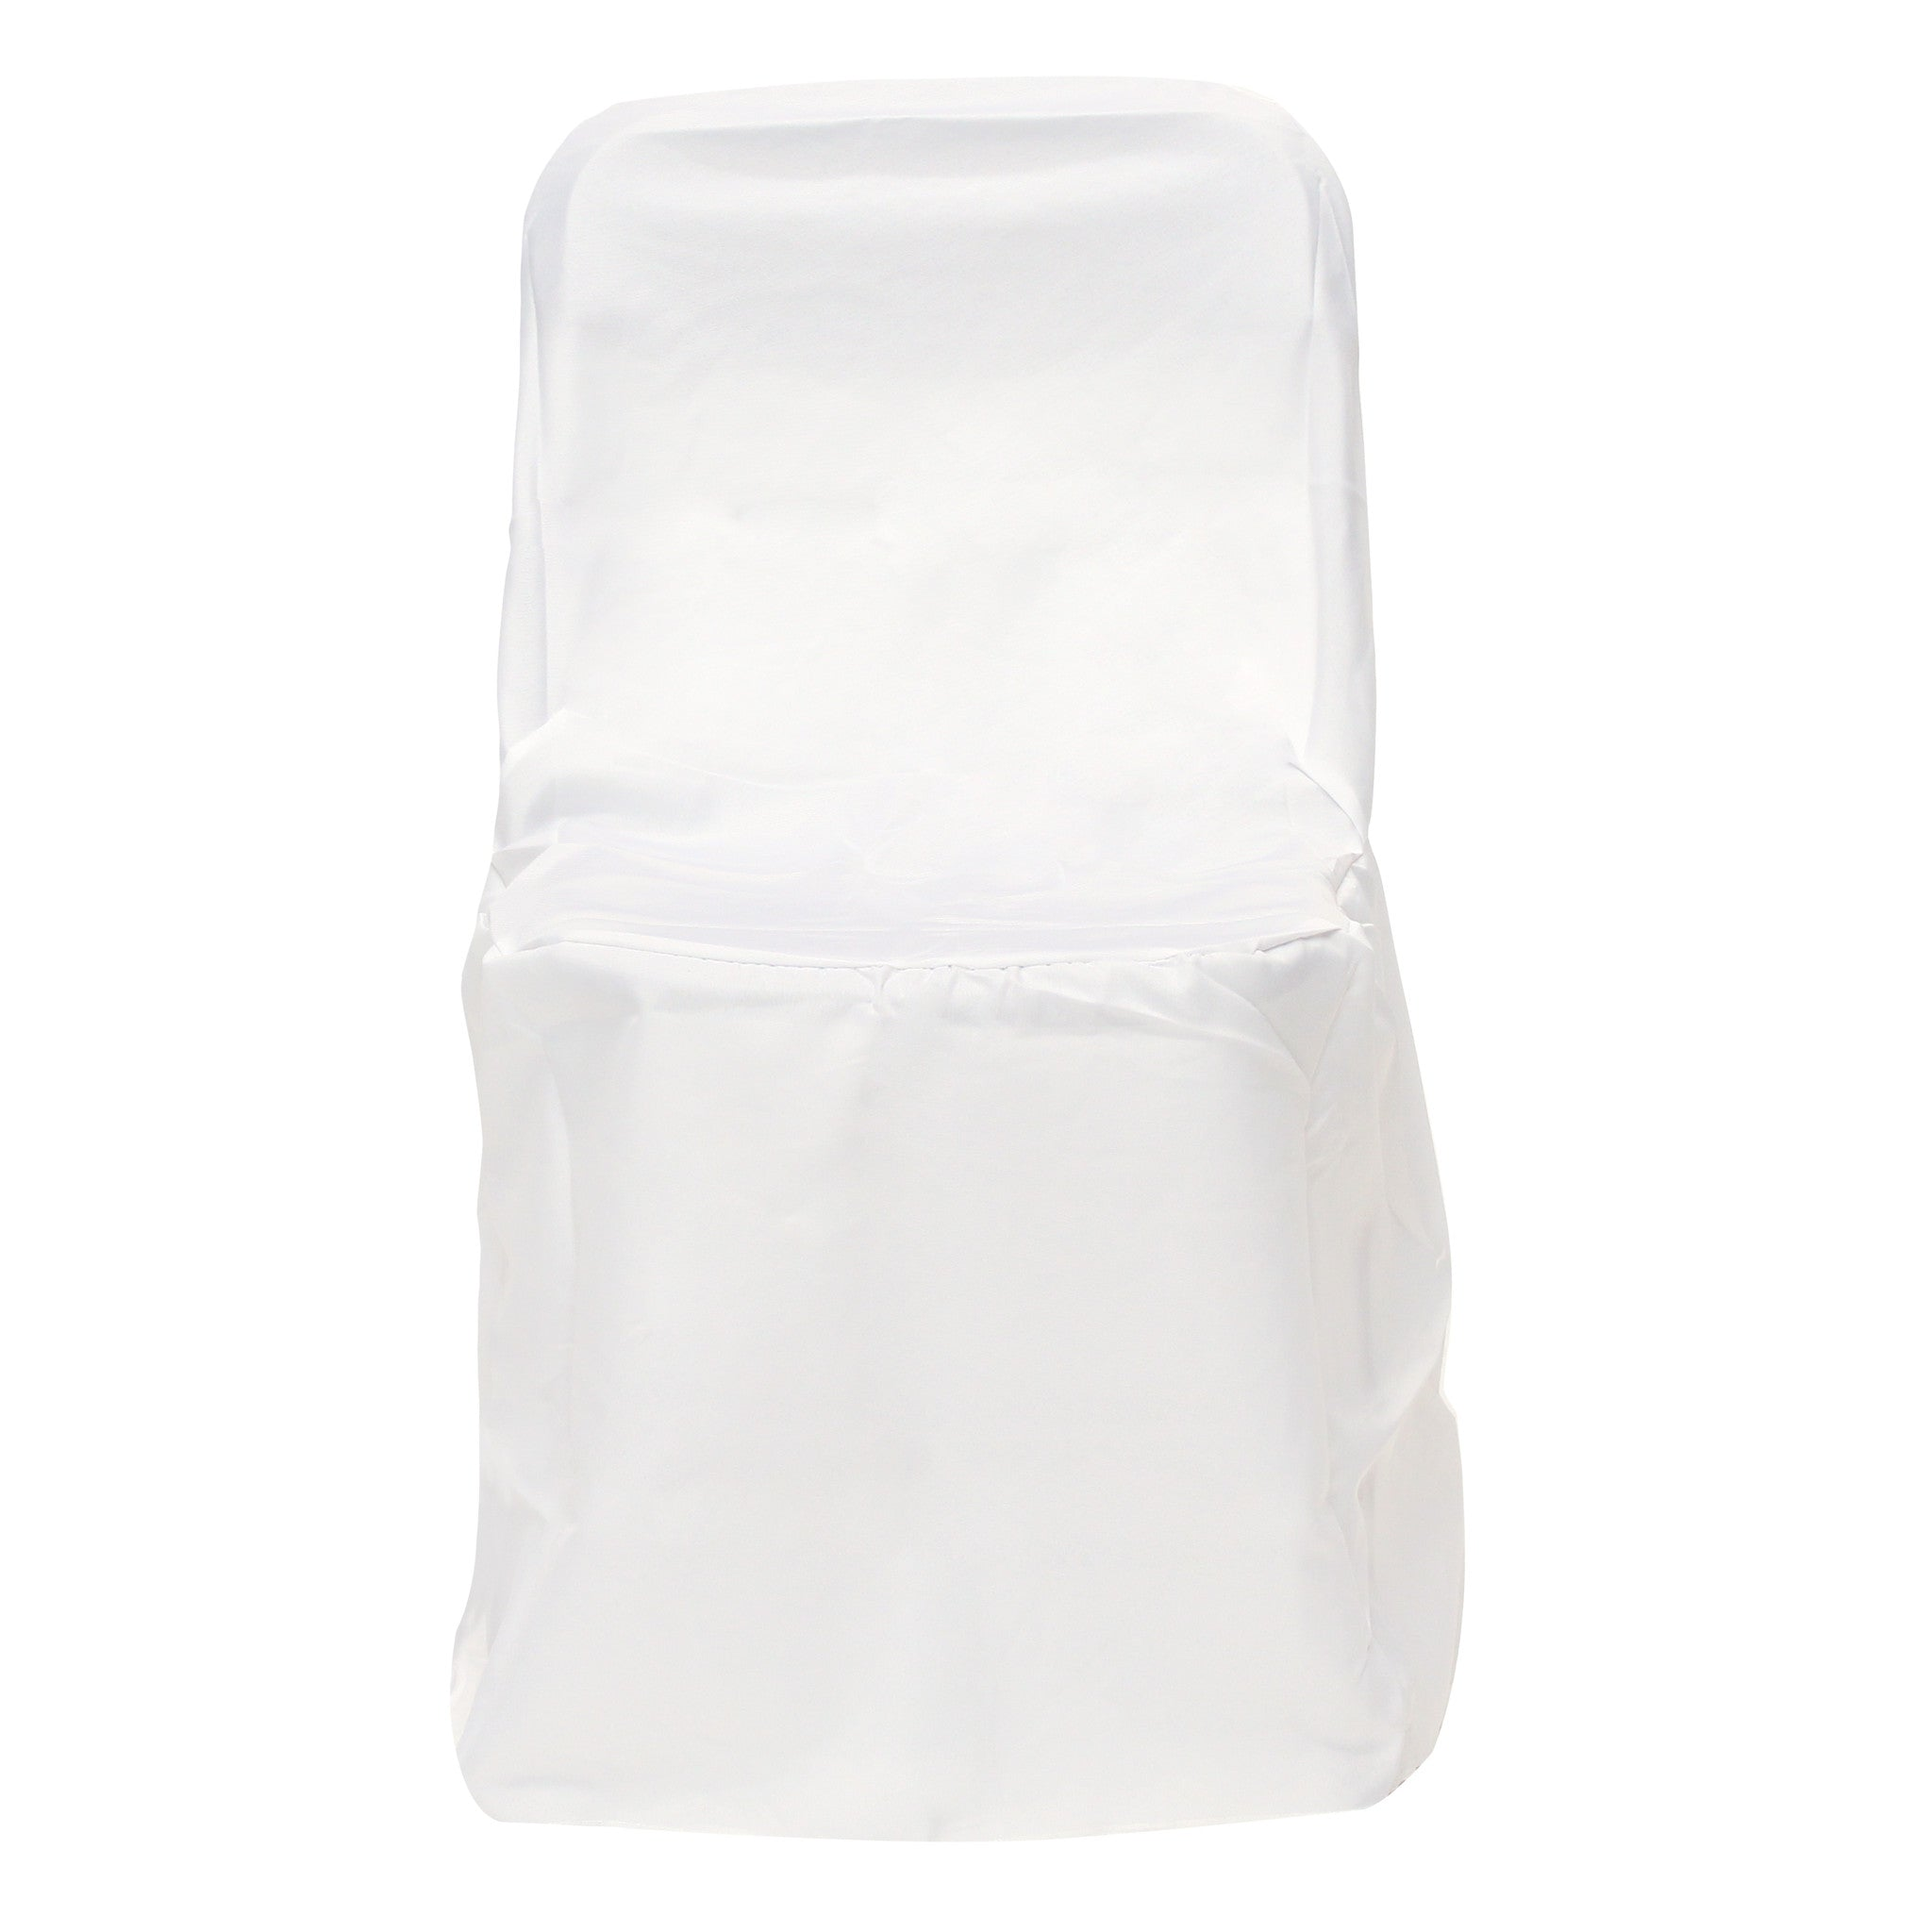 Banquet chair cover Valley Tablecloths